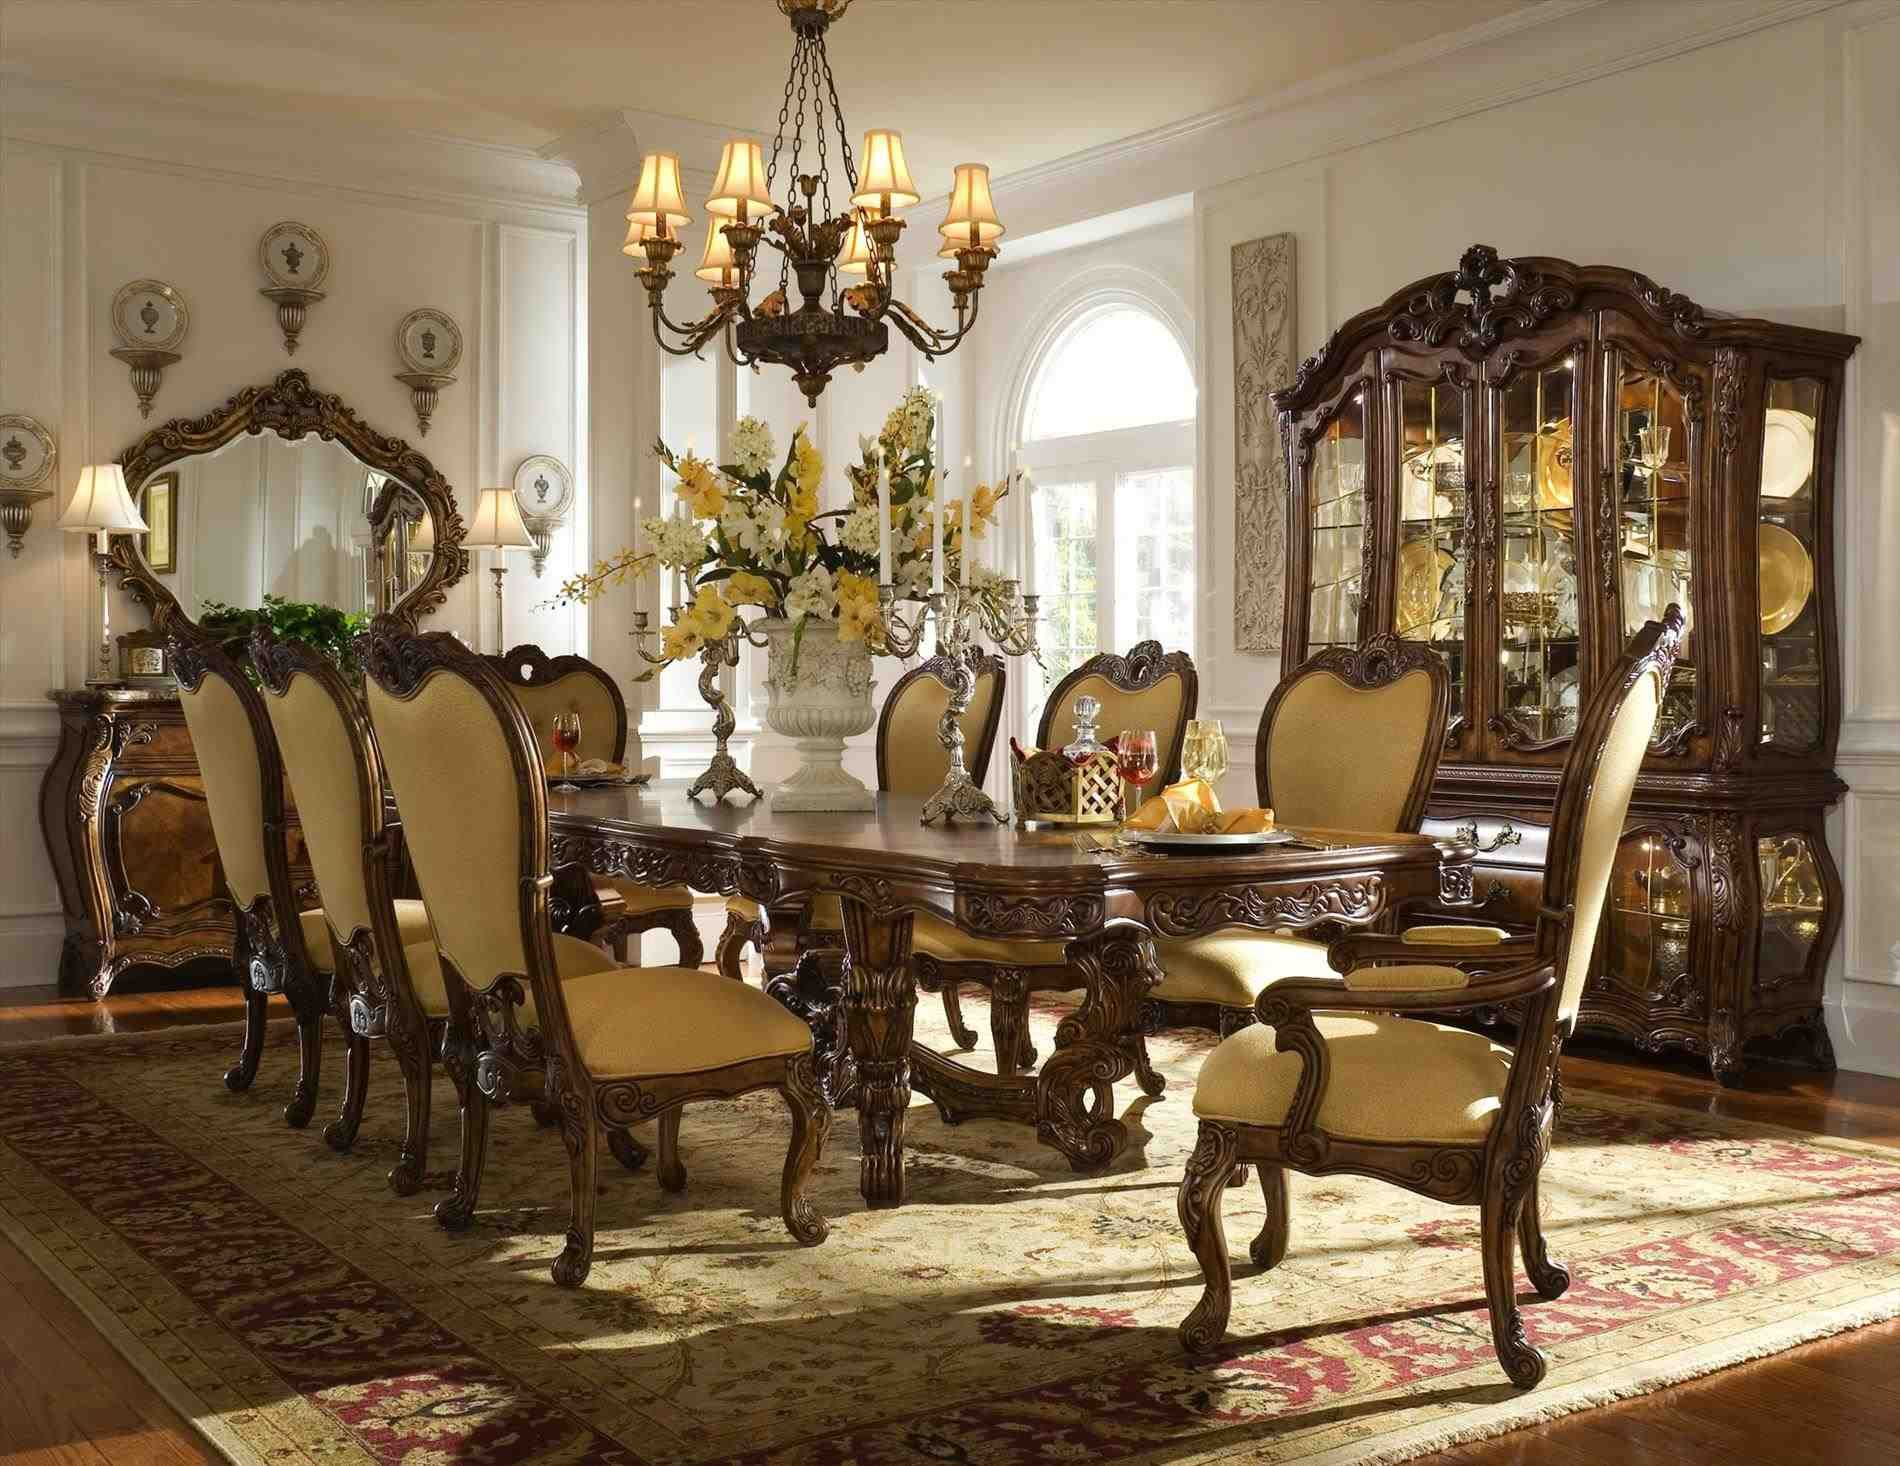 New Post Formal Dining Room Sets For 10  Decors Ideas  Pinterest Simple Dining Room Set For 10 Review